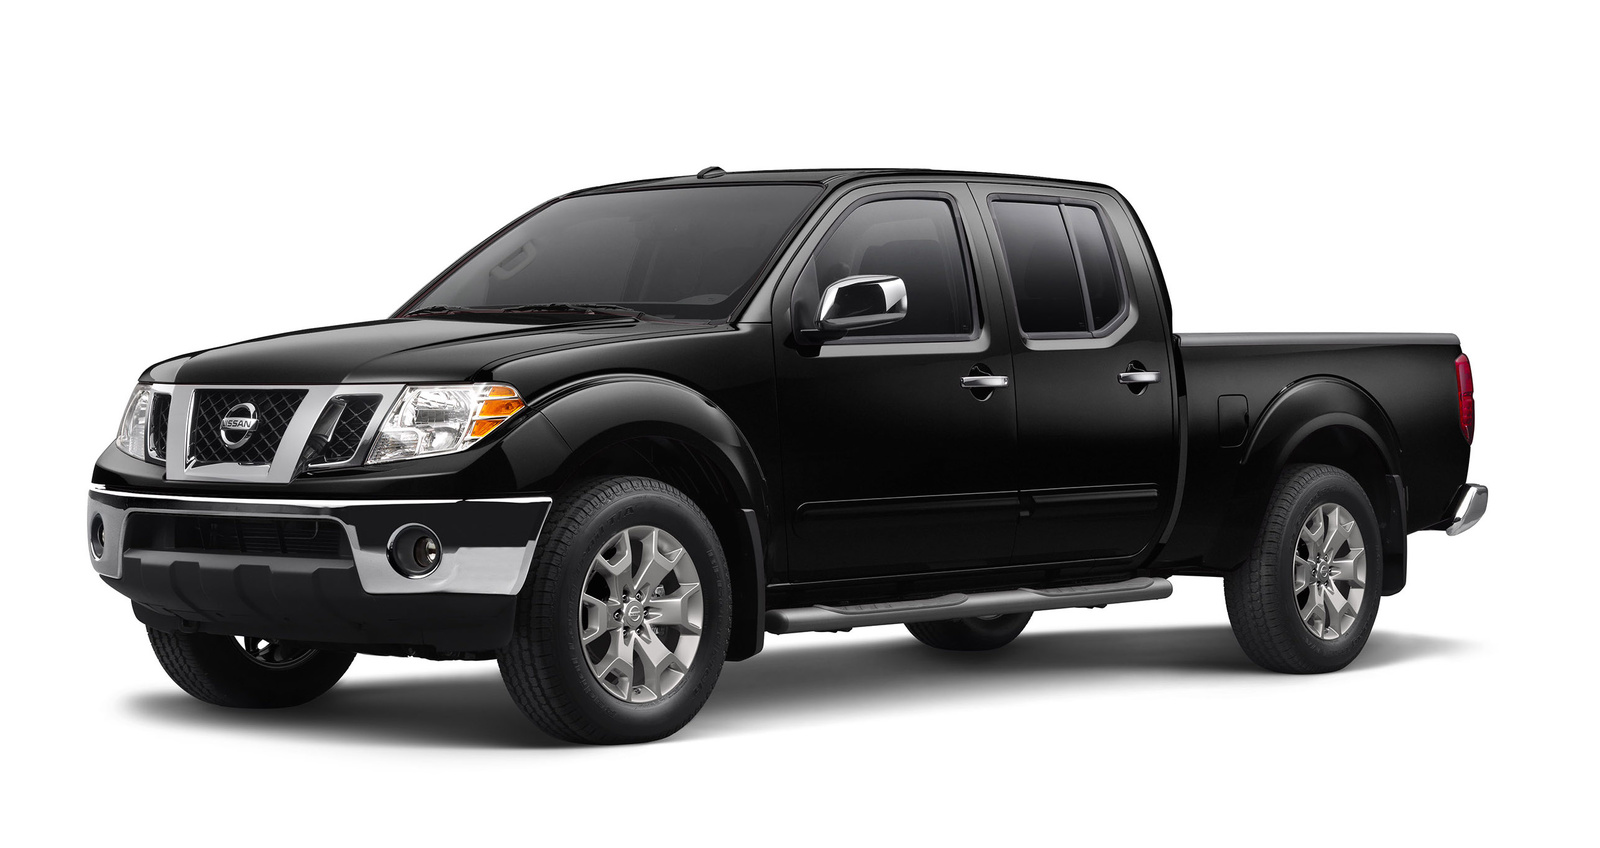 new 2015 2016 nissan frontier for sale cargurus. Black Bedroom Furniture Sets. Home Design Ideas